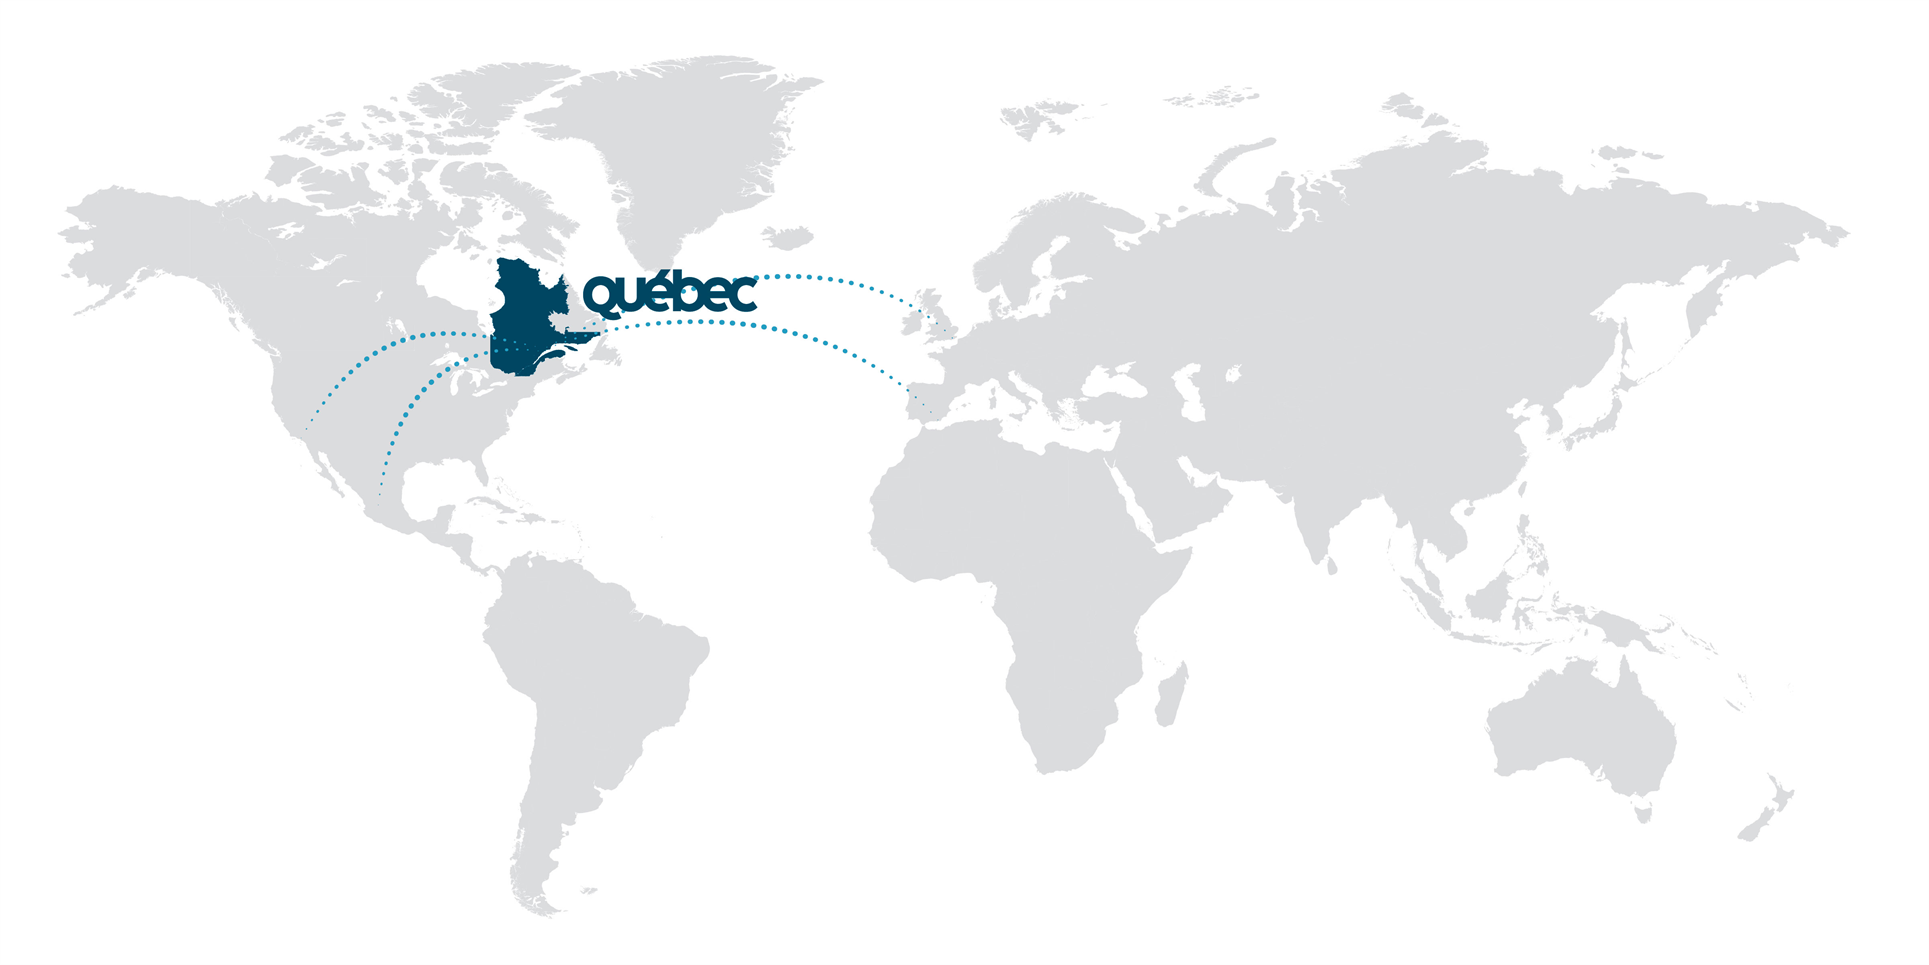 Quebec in the world